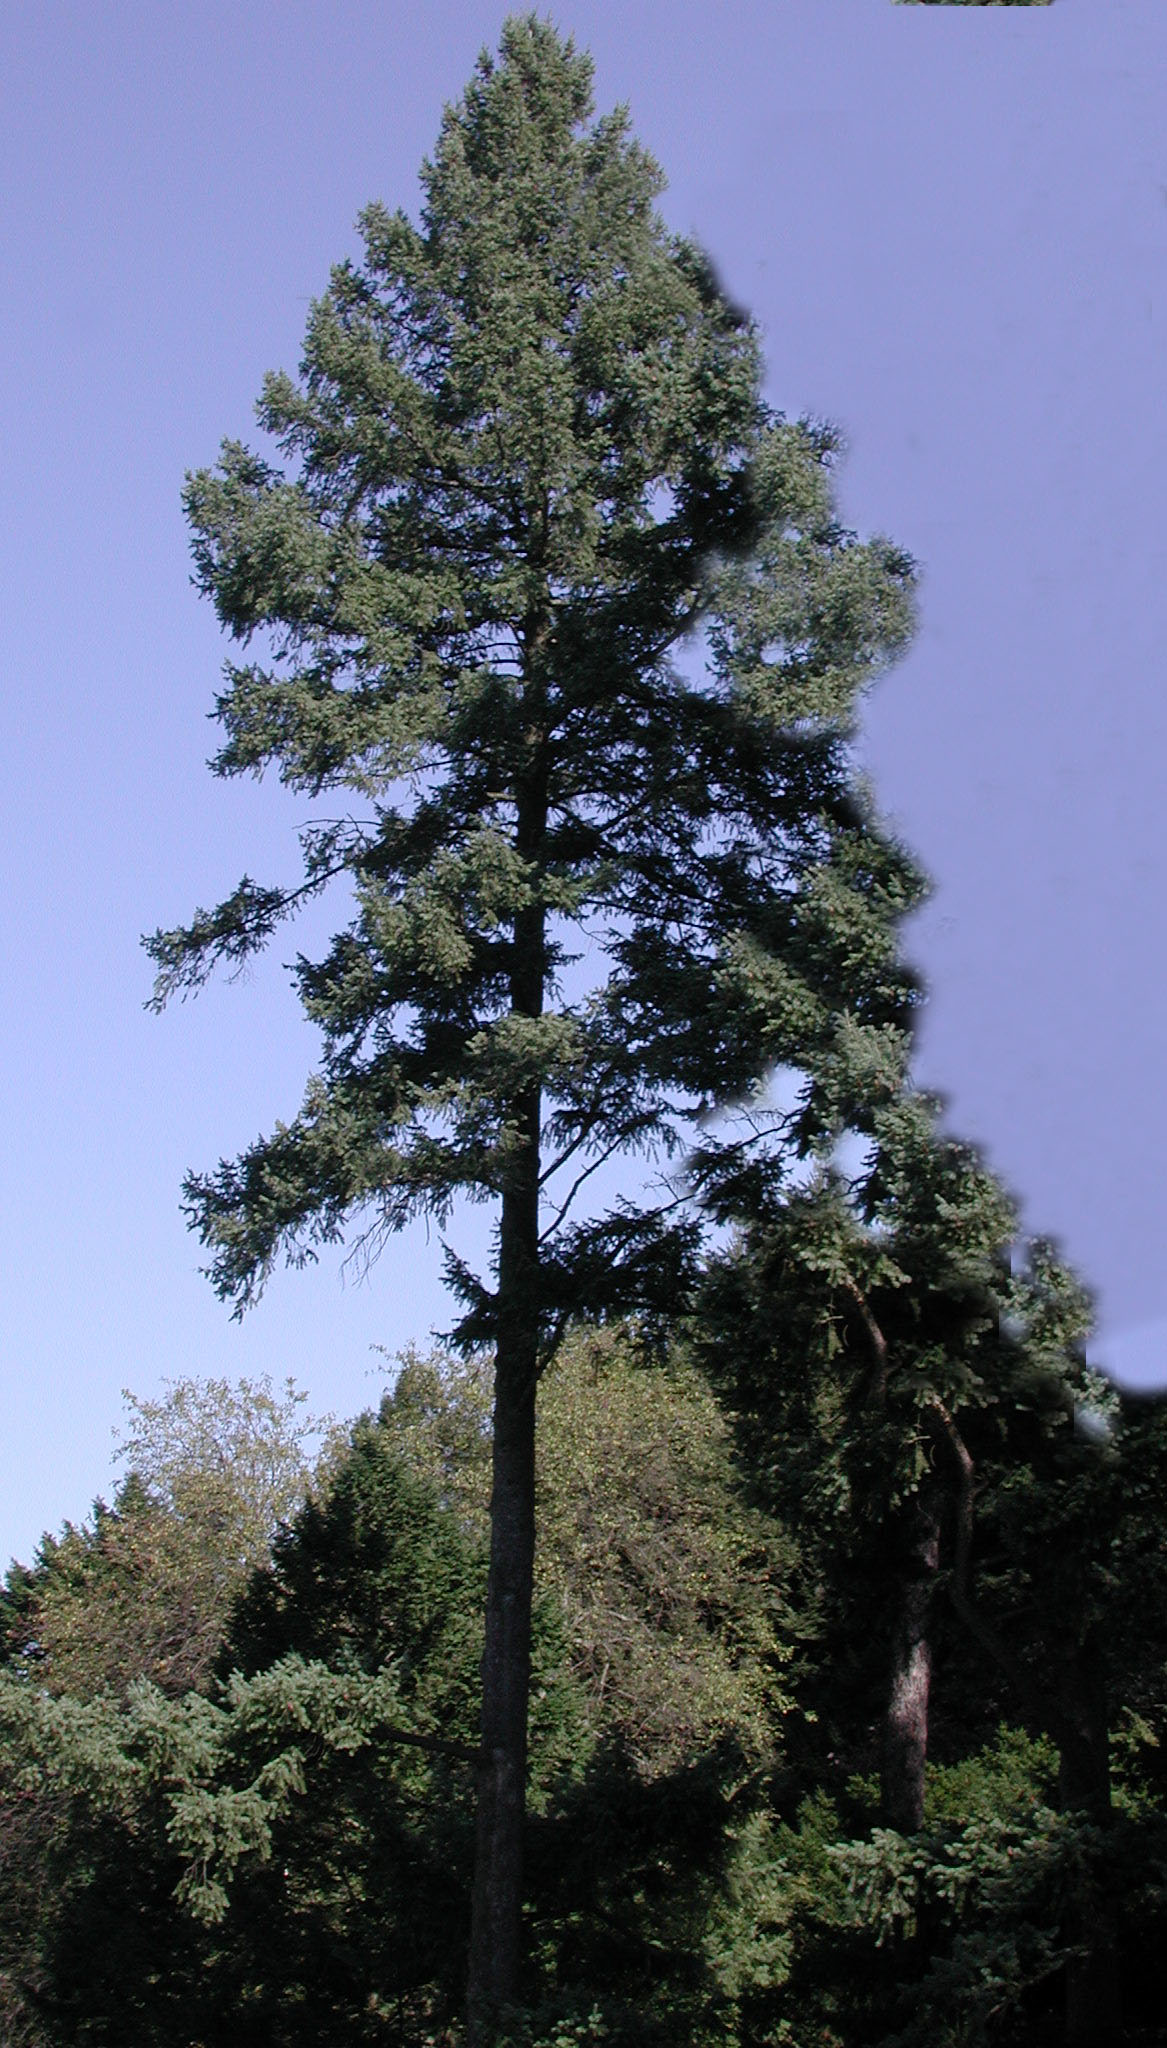 Fir Tree Fir tree - ed.jpg 13-oct-2004